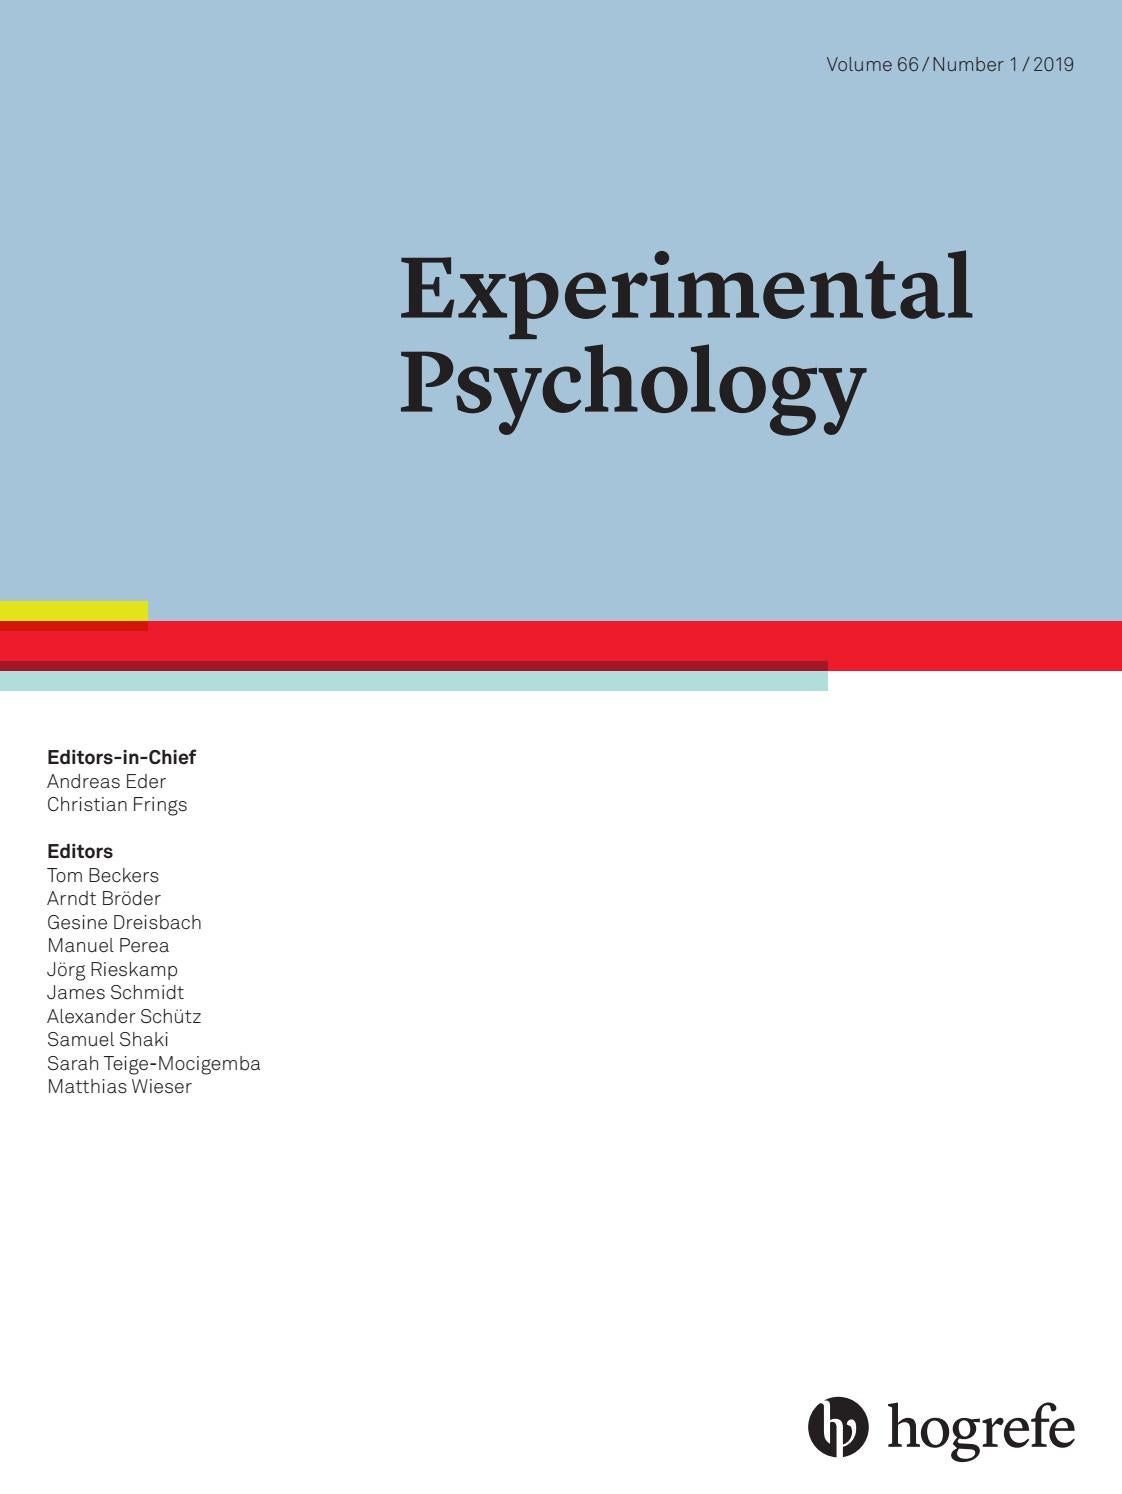 Experimental Psychology Issue 1 2019 By Hogrefe Issuu